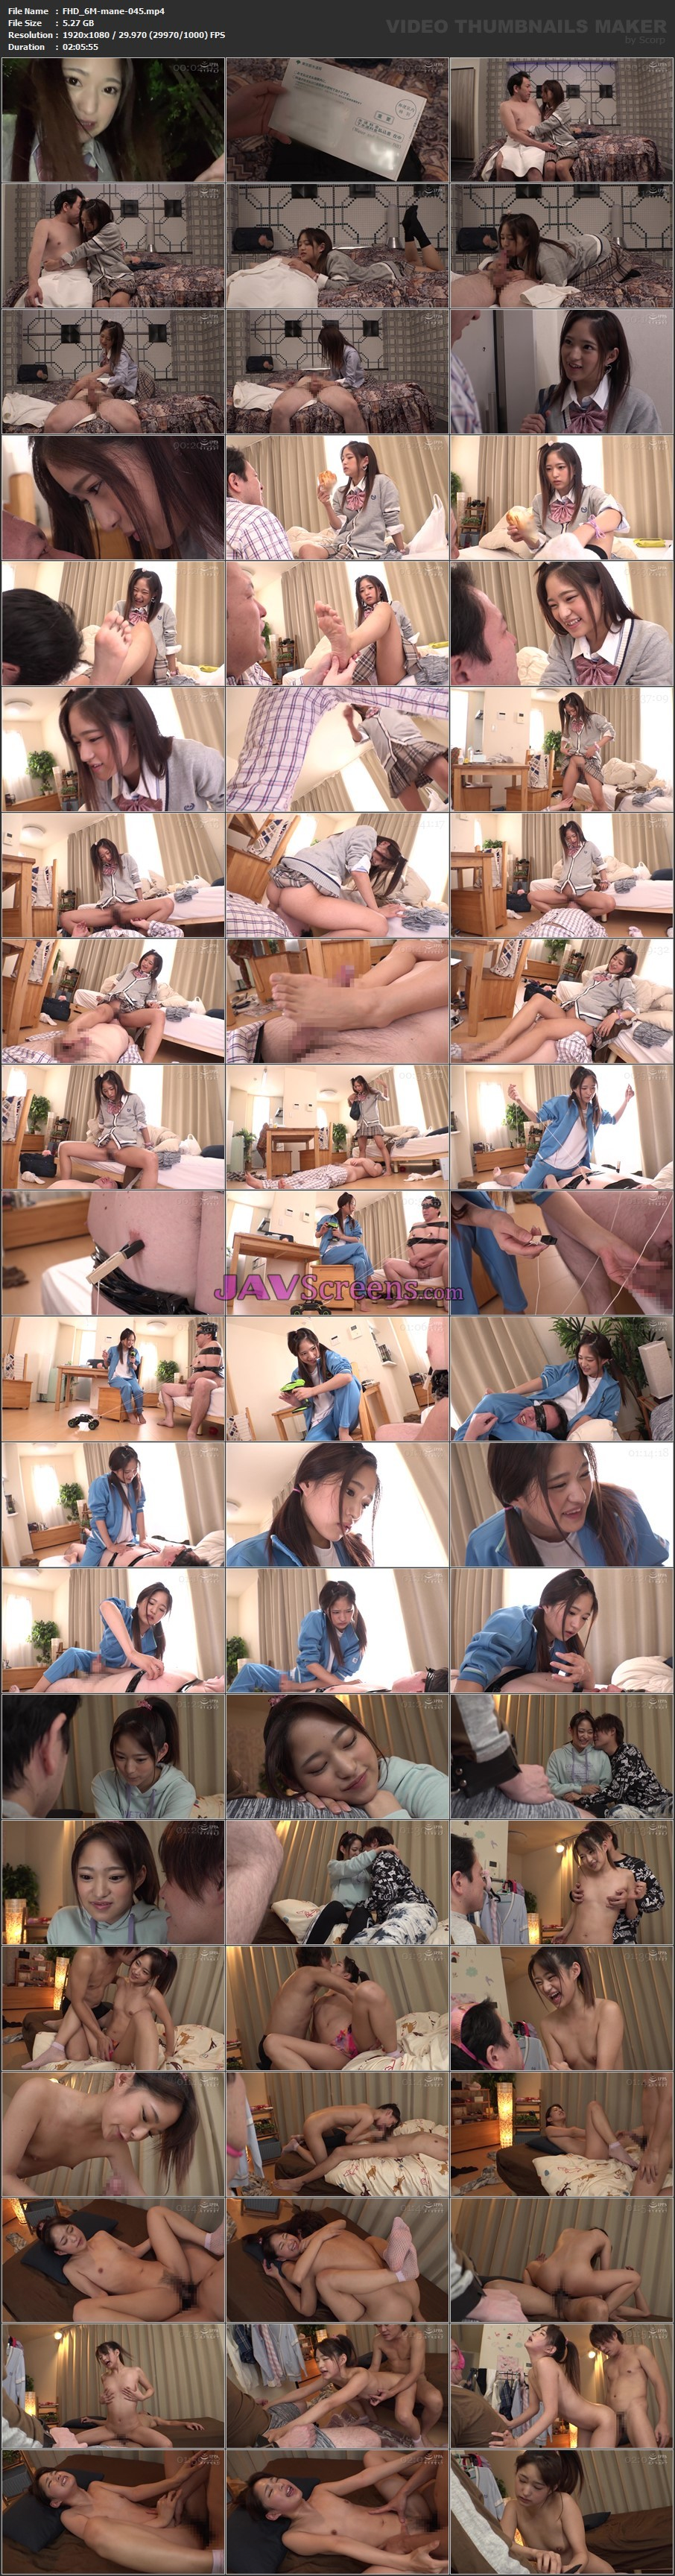 MANE-045.jpg - JAV Screenshot